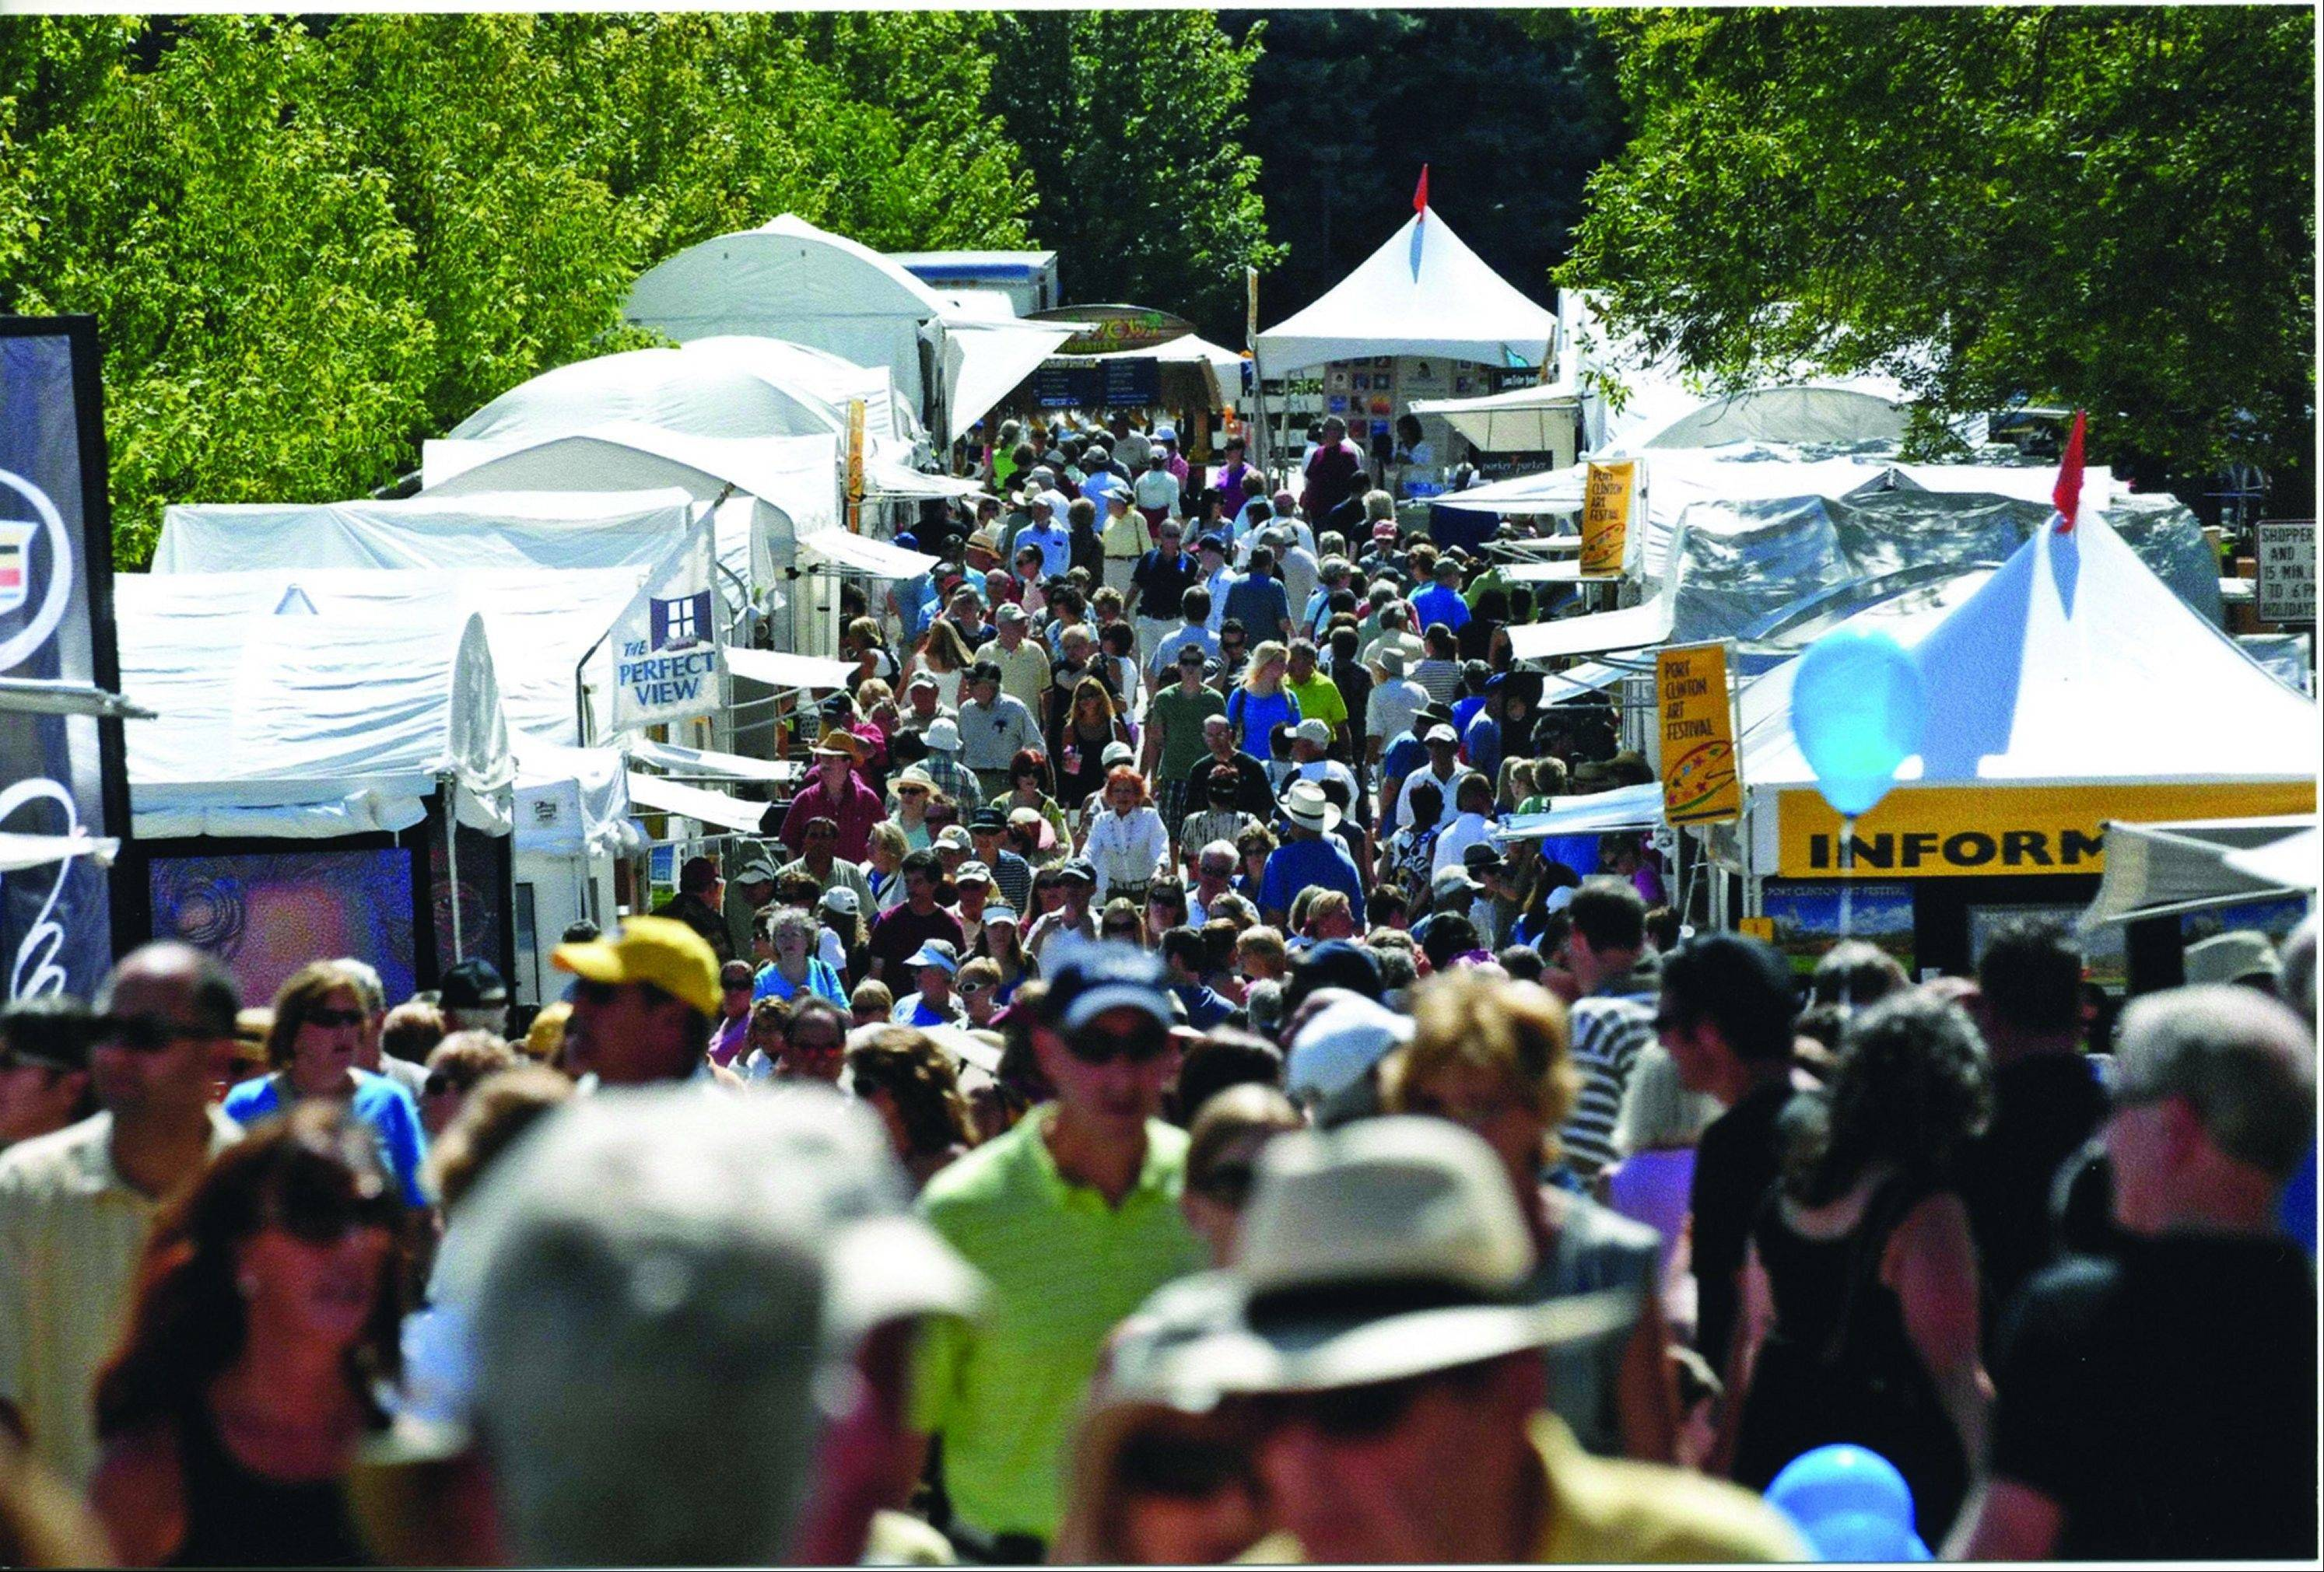 Daily Herald file photoThousands of art fans flock to the annual outdoor Port Clinton Art Festival in Highland Park.